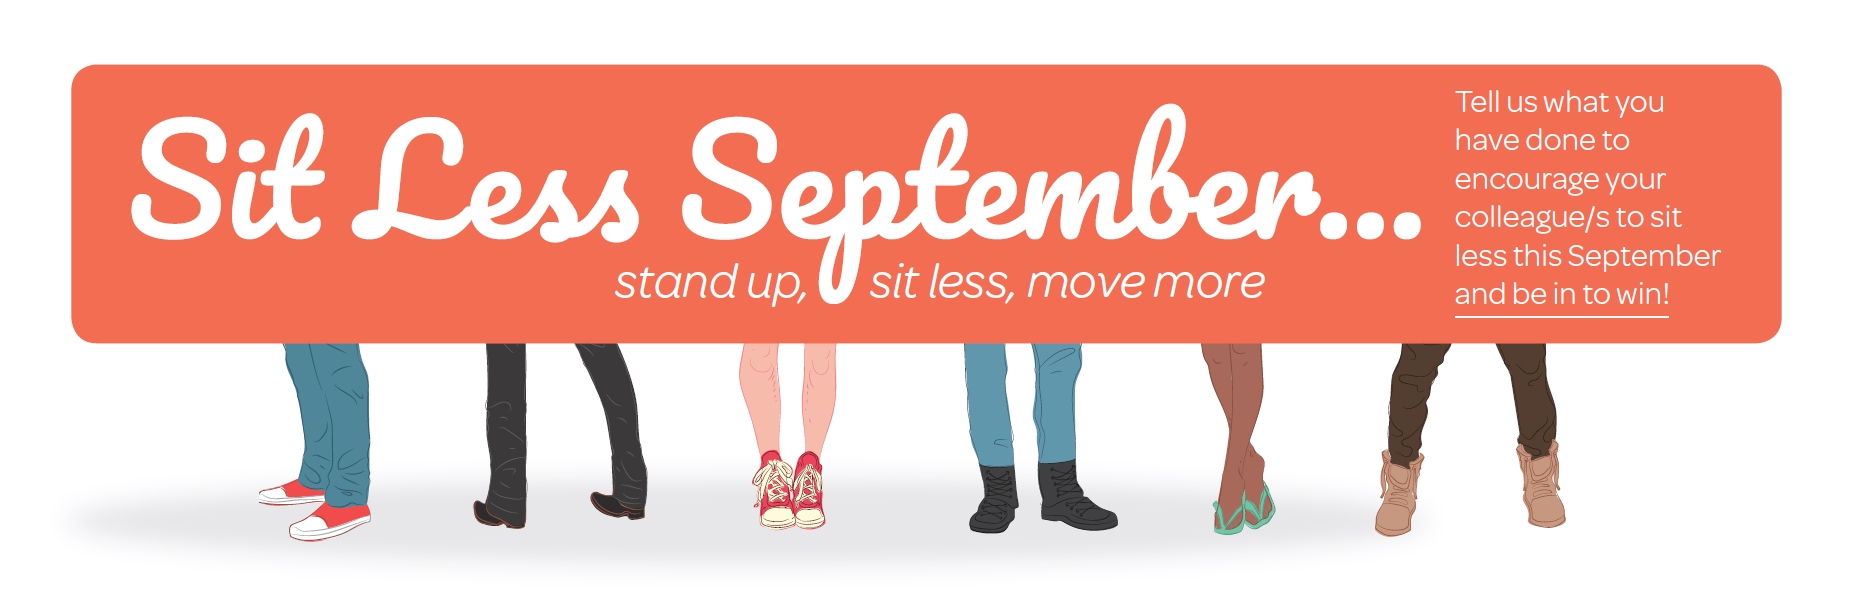 Sit Less September: Tell us what you doing to sit less and be in to win.